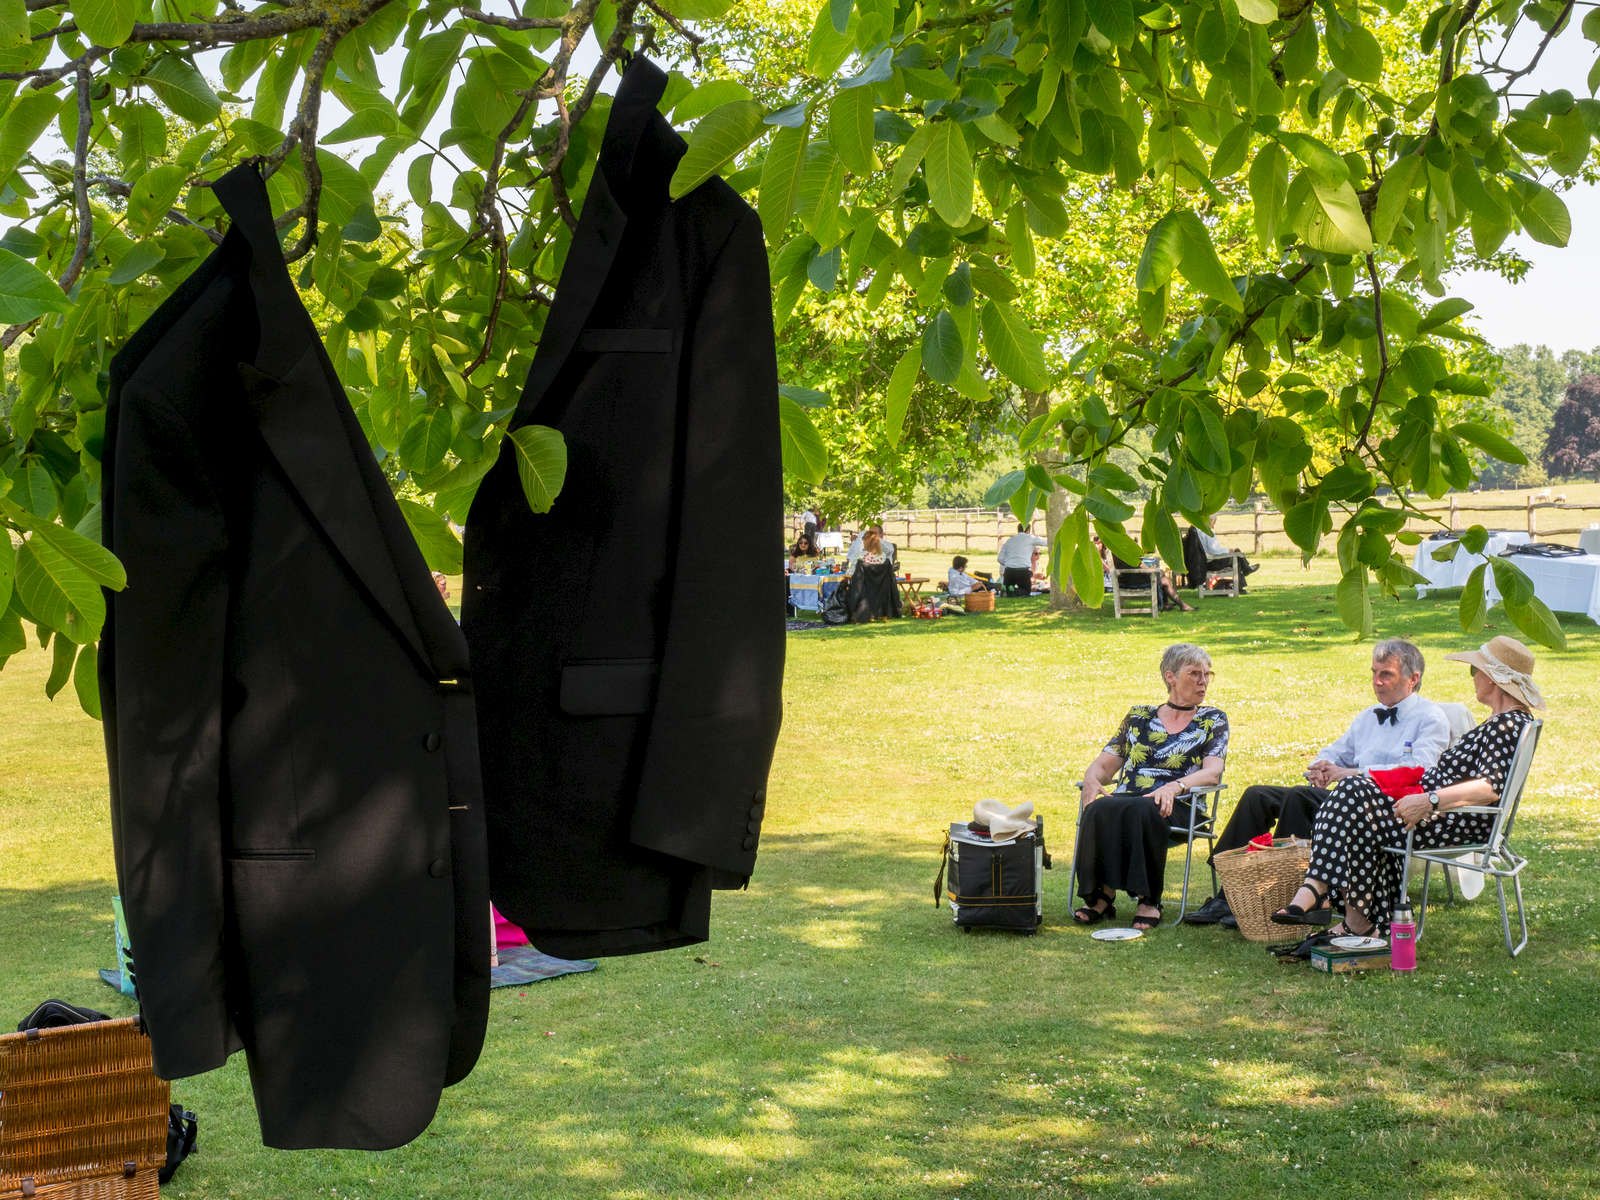 Opera enthusiasts picnic on the lawn at Glyndebourne's under-30s promotion night.Glyndebourne is an English country house, the site of an opera house that, since 1934, has been the venue for the annual Glyndebourne Festival Opera.